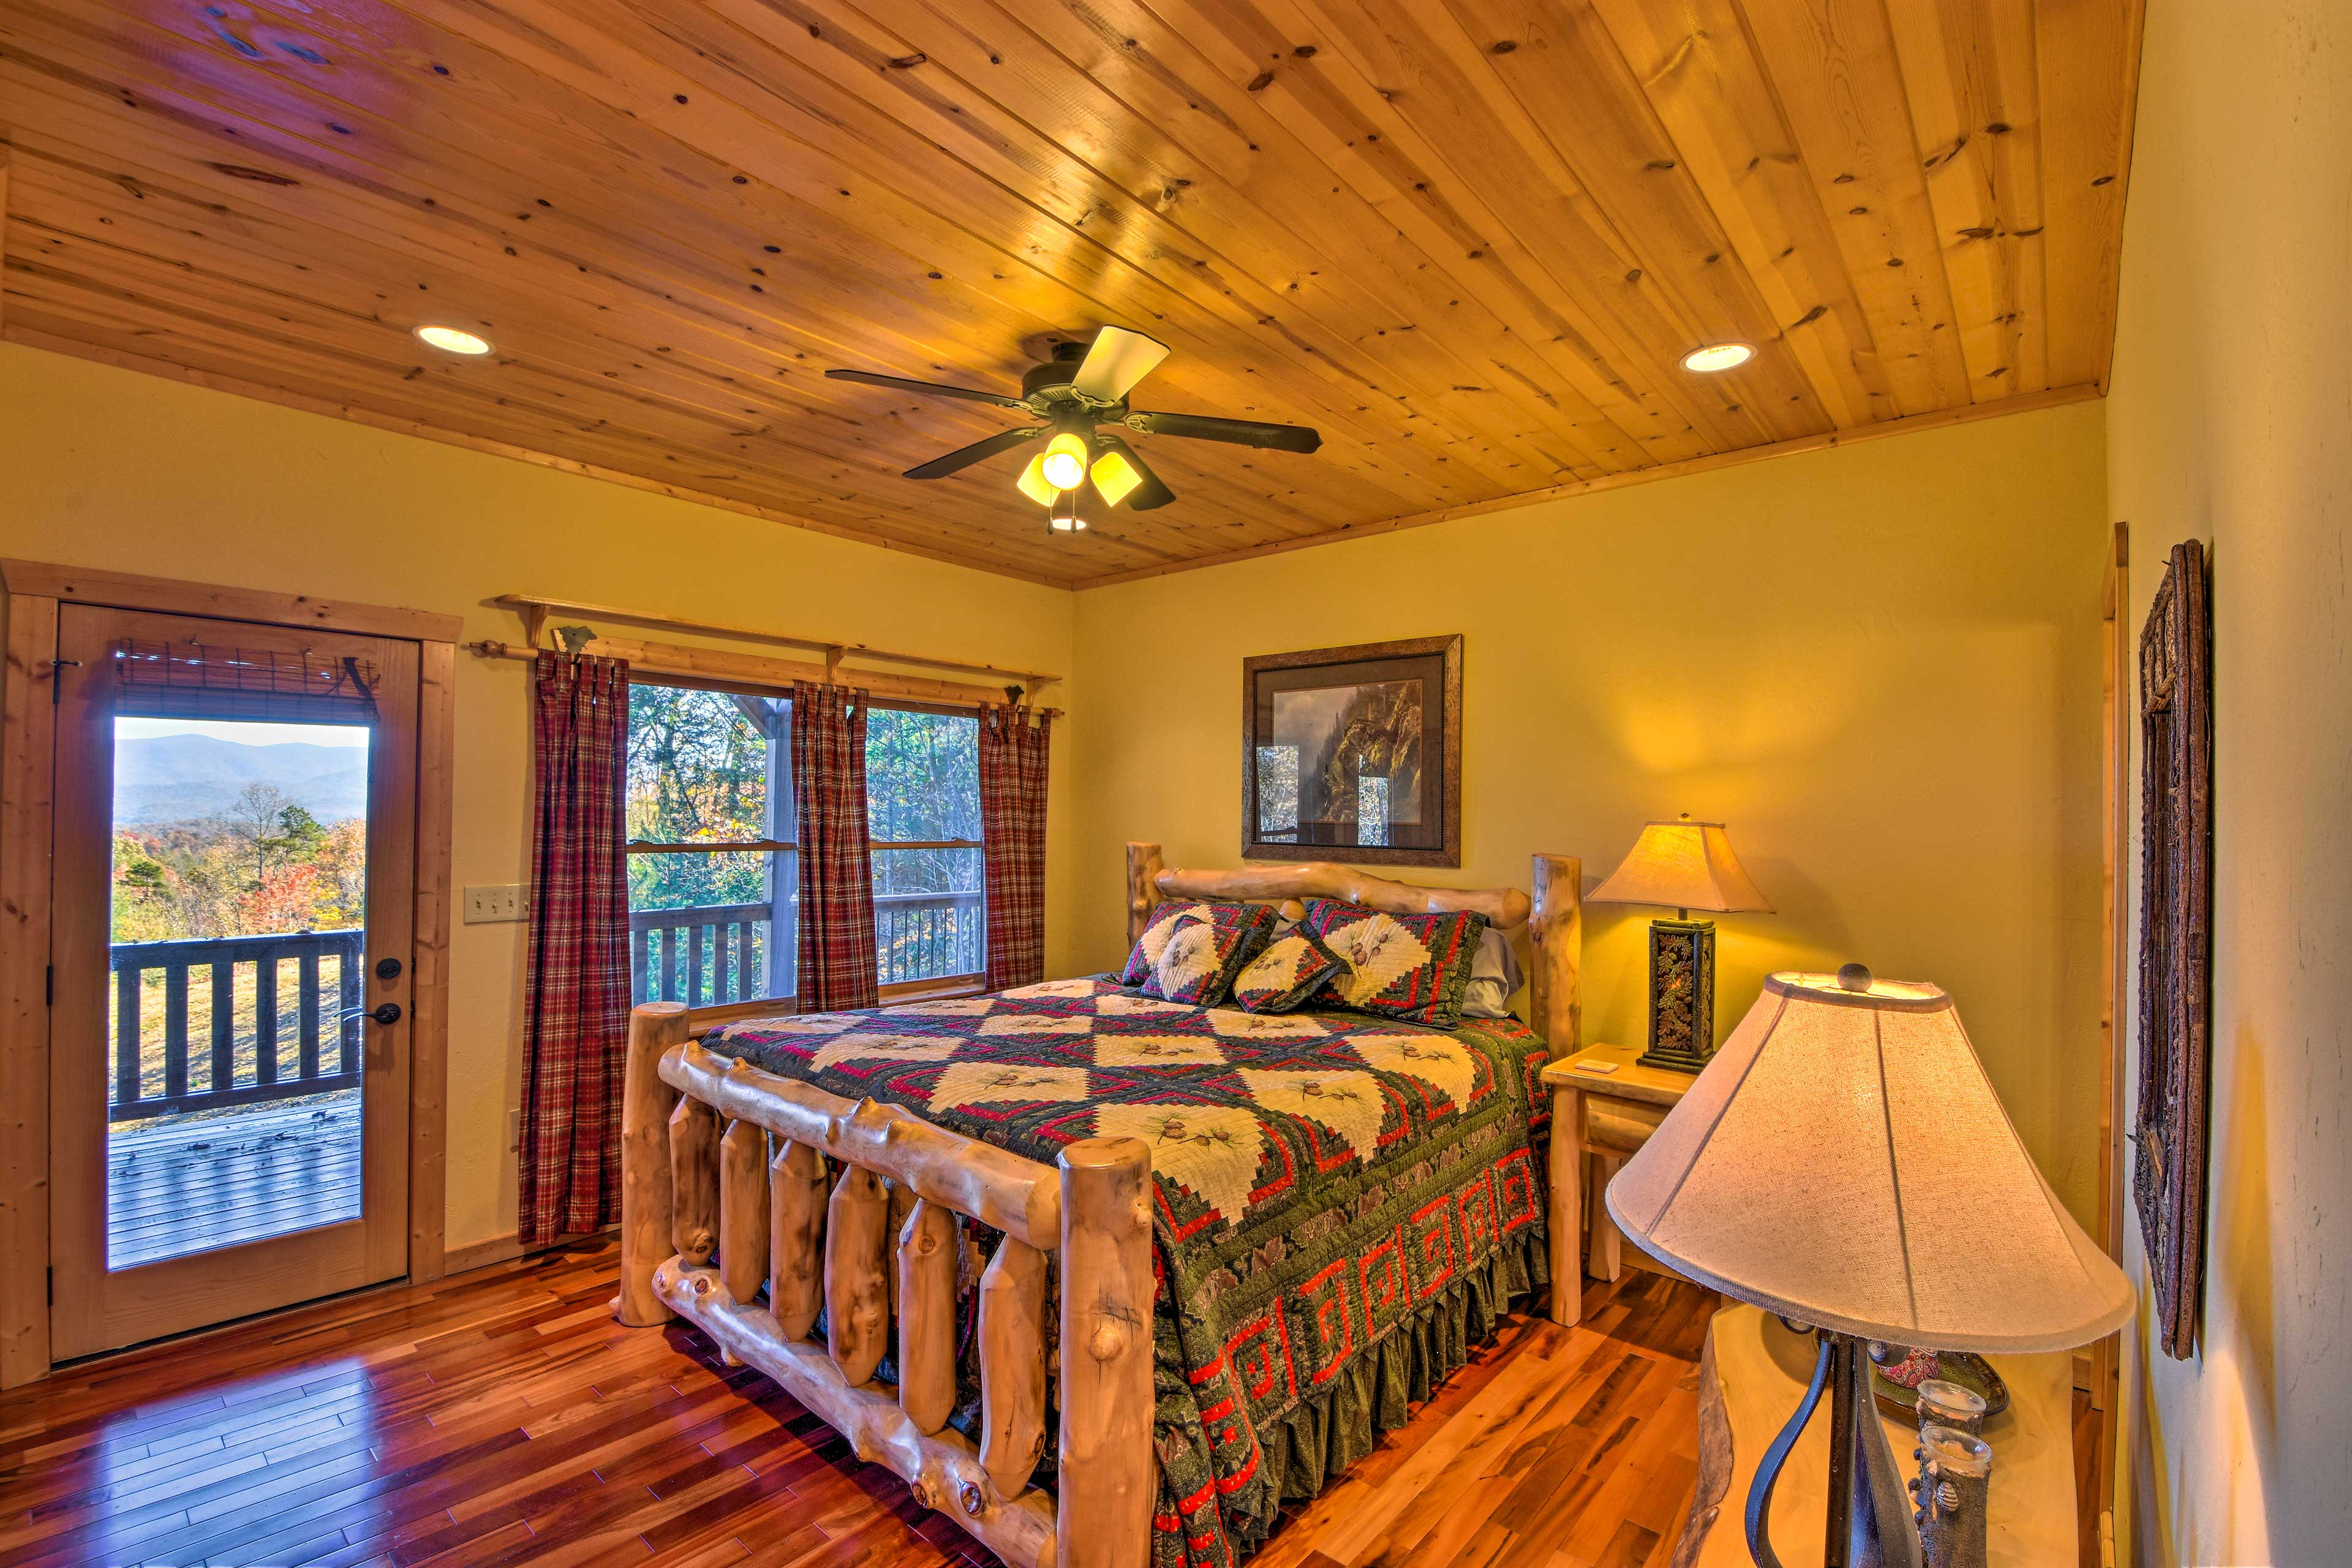 The second bedroom is also equipped with a king-sized bed and a flat-screen TV.